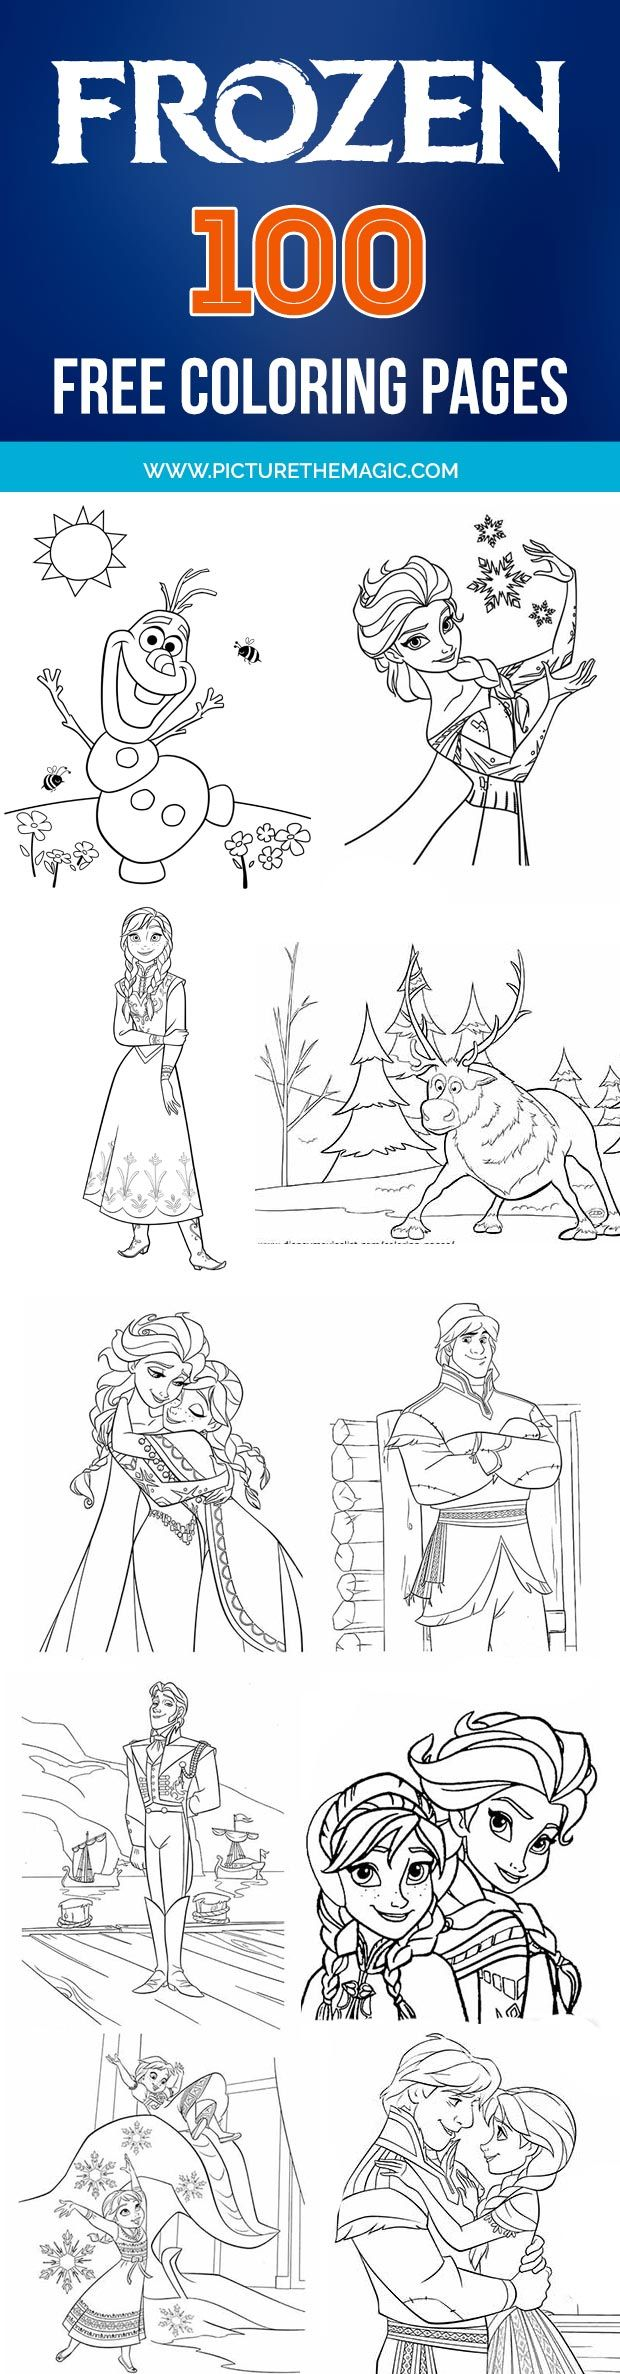 Download more than 100 free Frozen coloring pages!